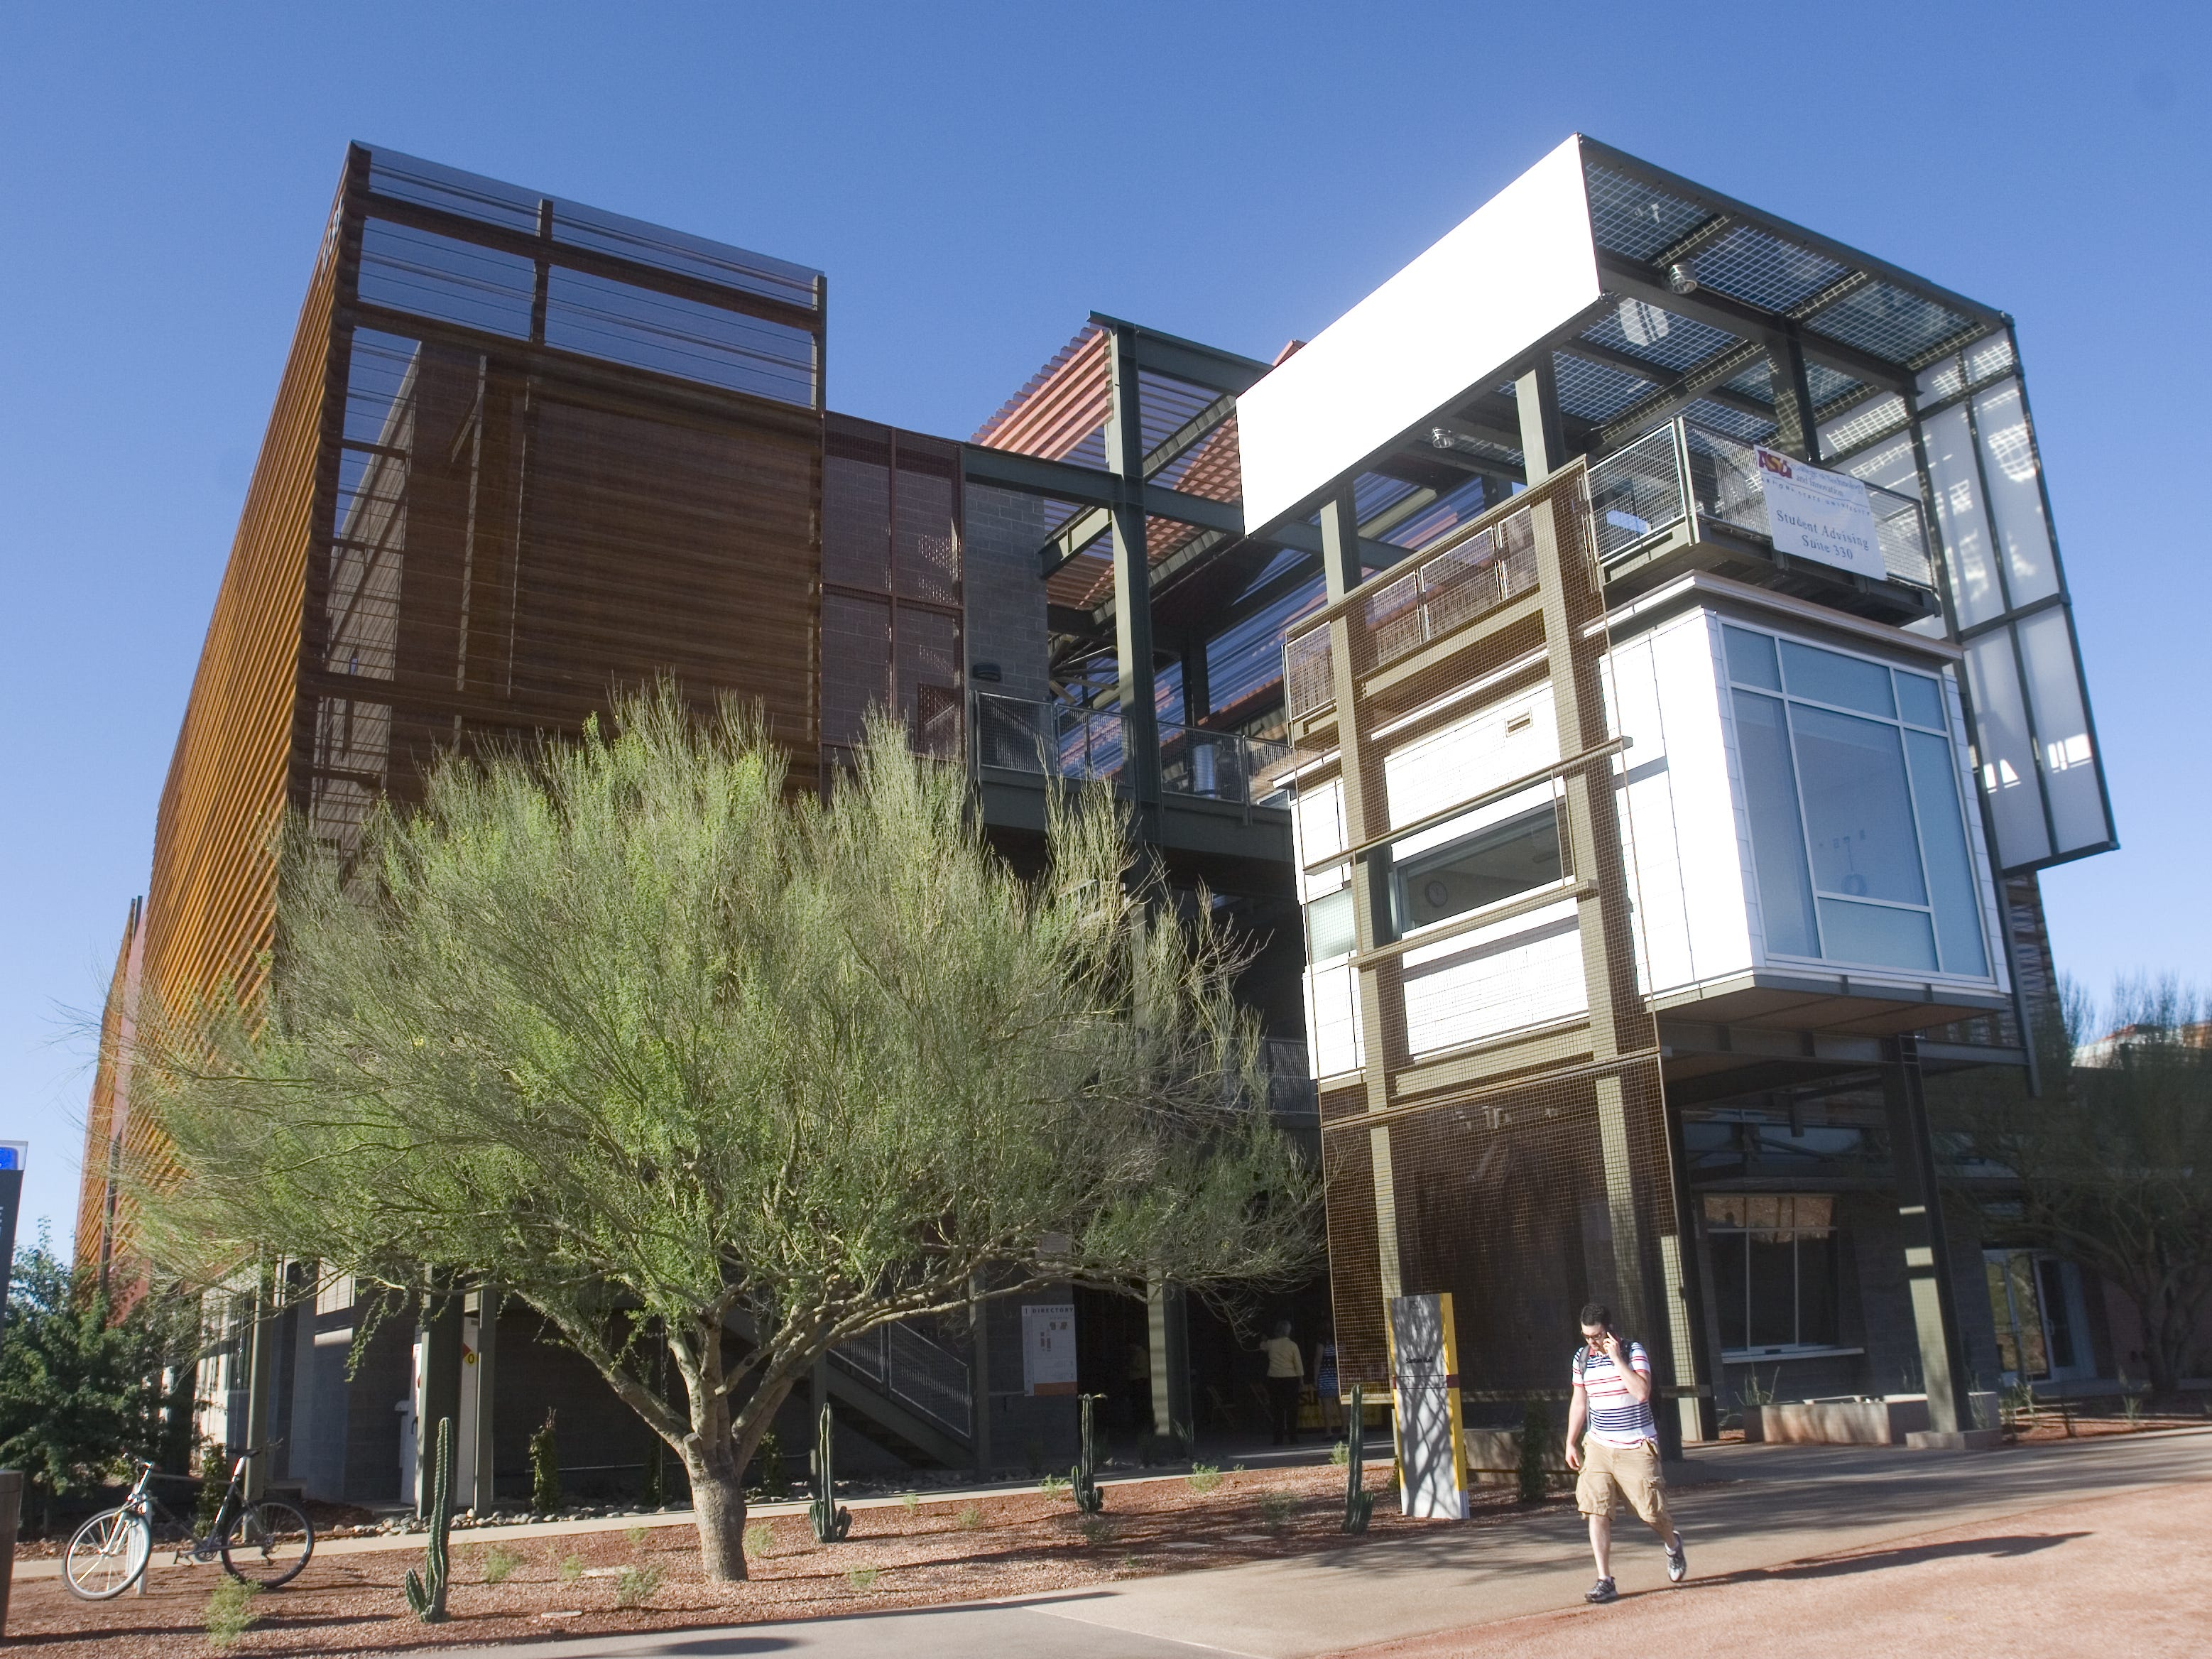 A student walks past Peralta Hall, one of several new buildings that opened at the ASU Polytechnic Campus in Mesa, as seen on Sept. 11, 2008.